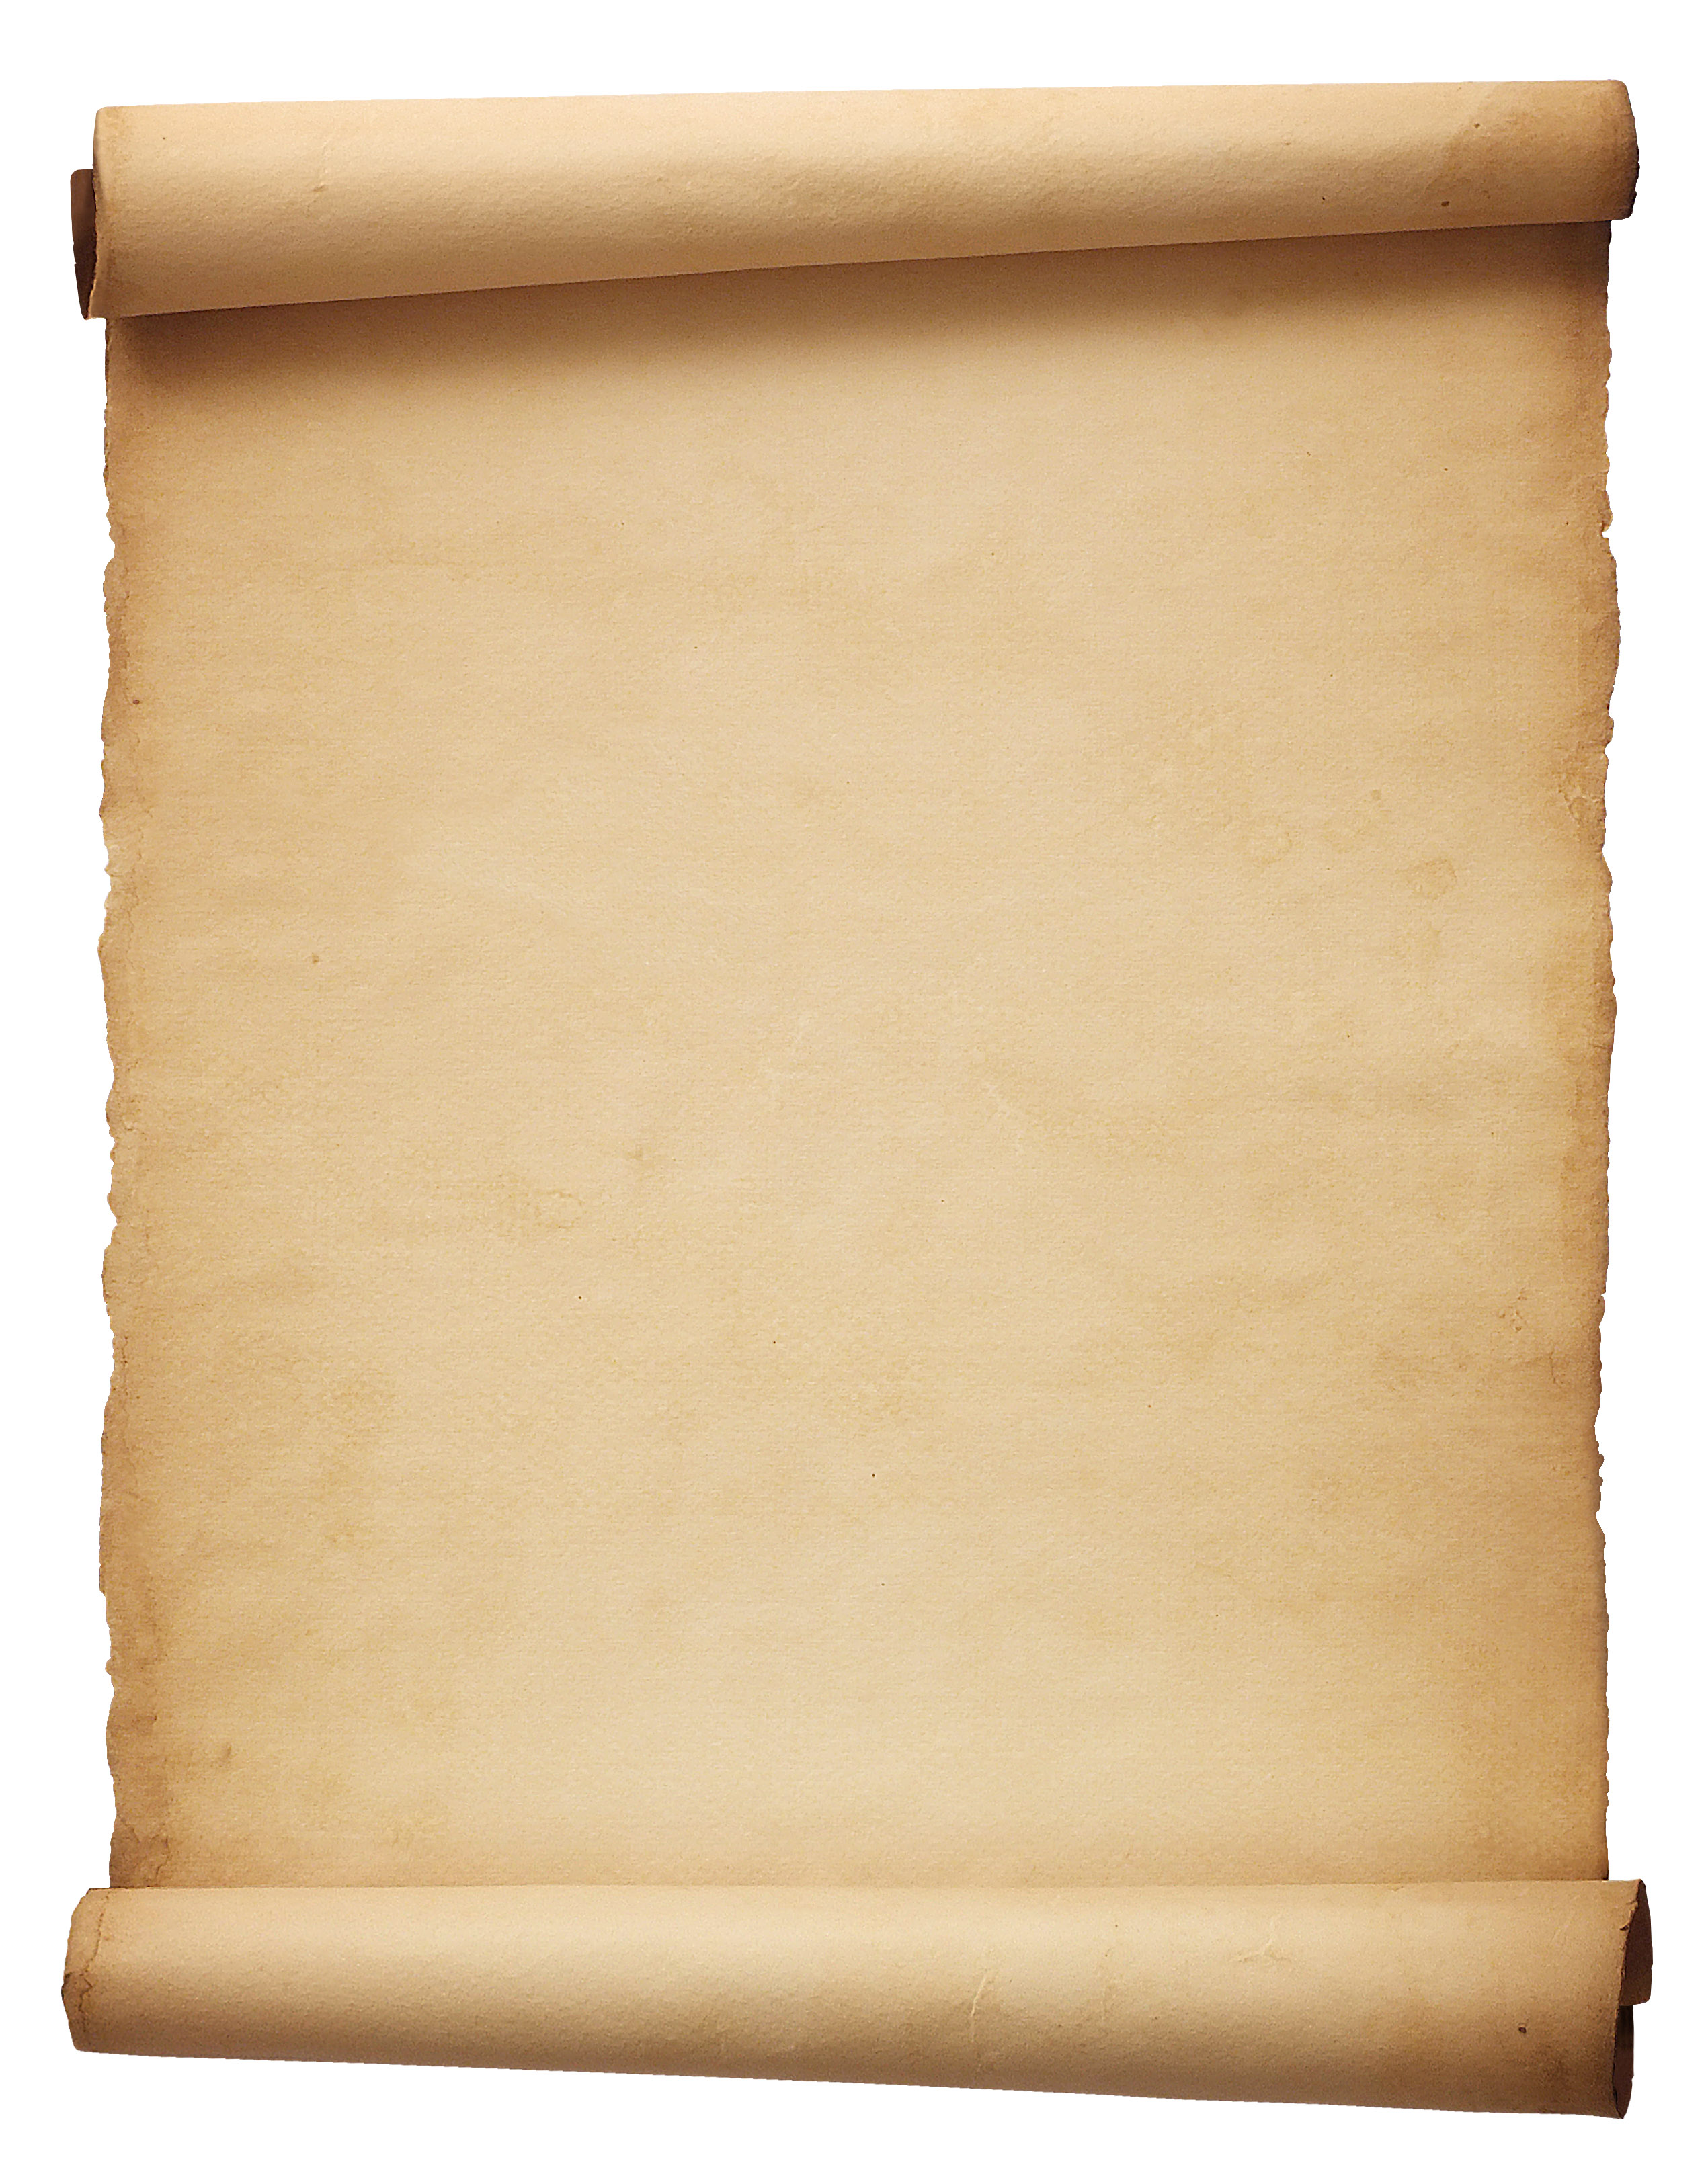 Paper Scroll Clipart.